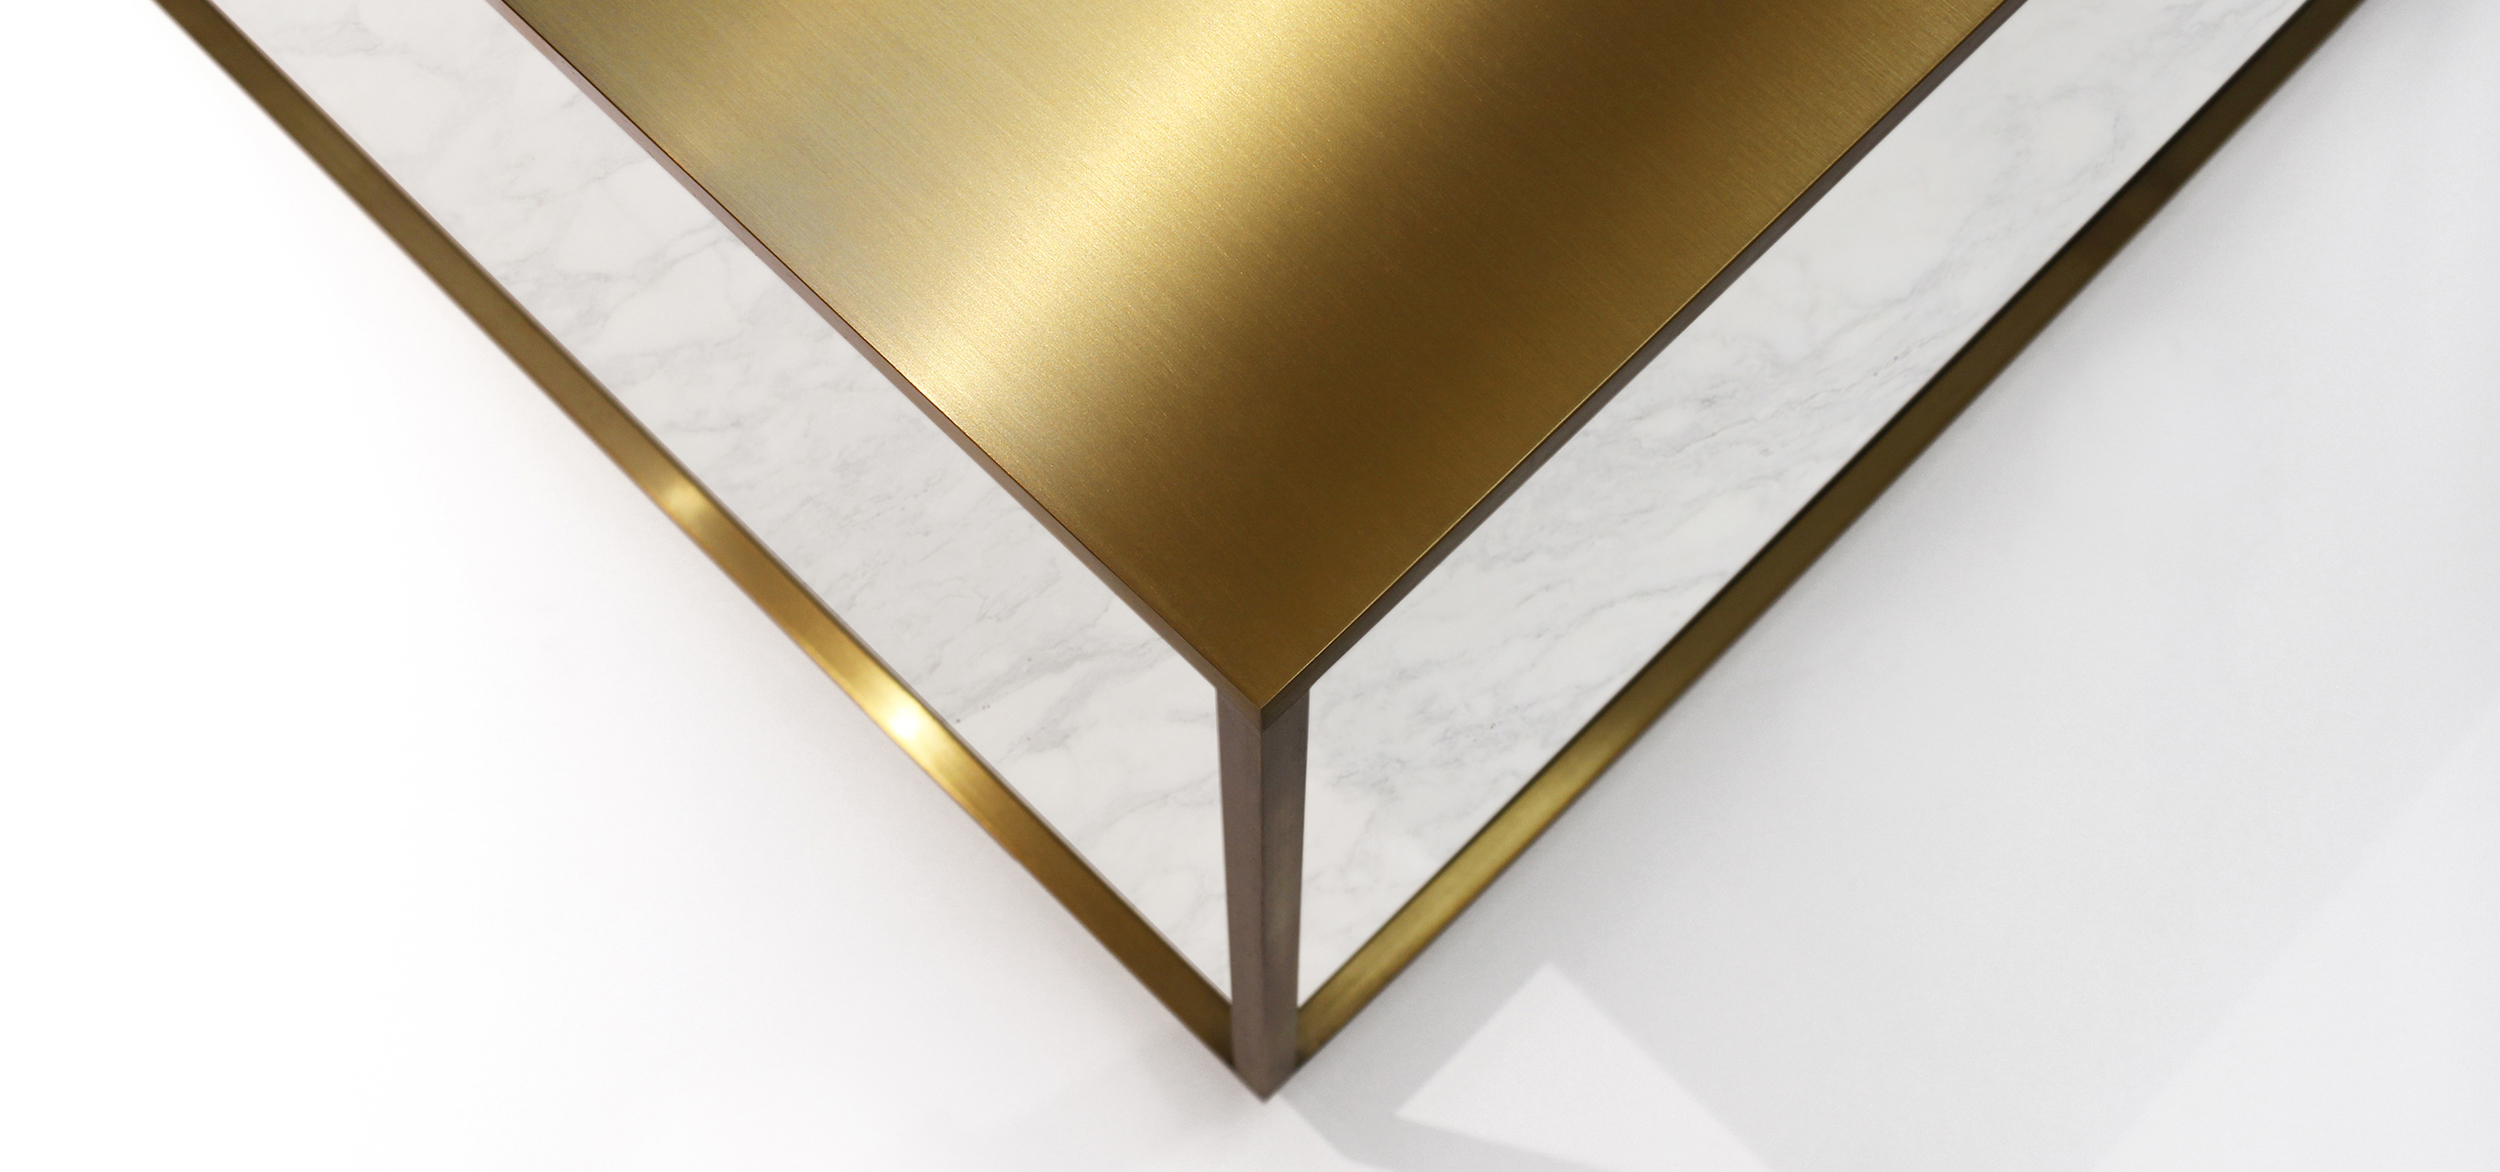 Top view on the Cubic Table made of brass, marble and wood designed by Johannes Torpe as part of a furniture collection for B&O stores